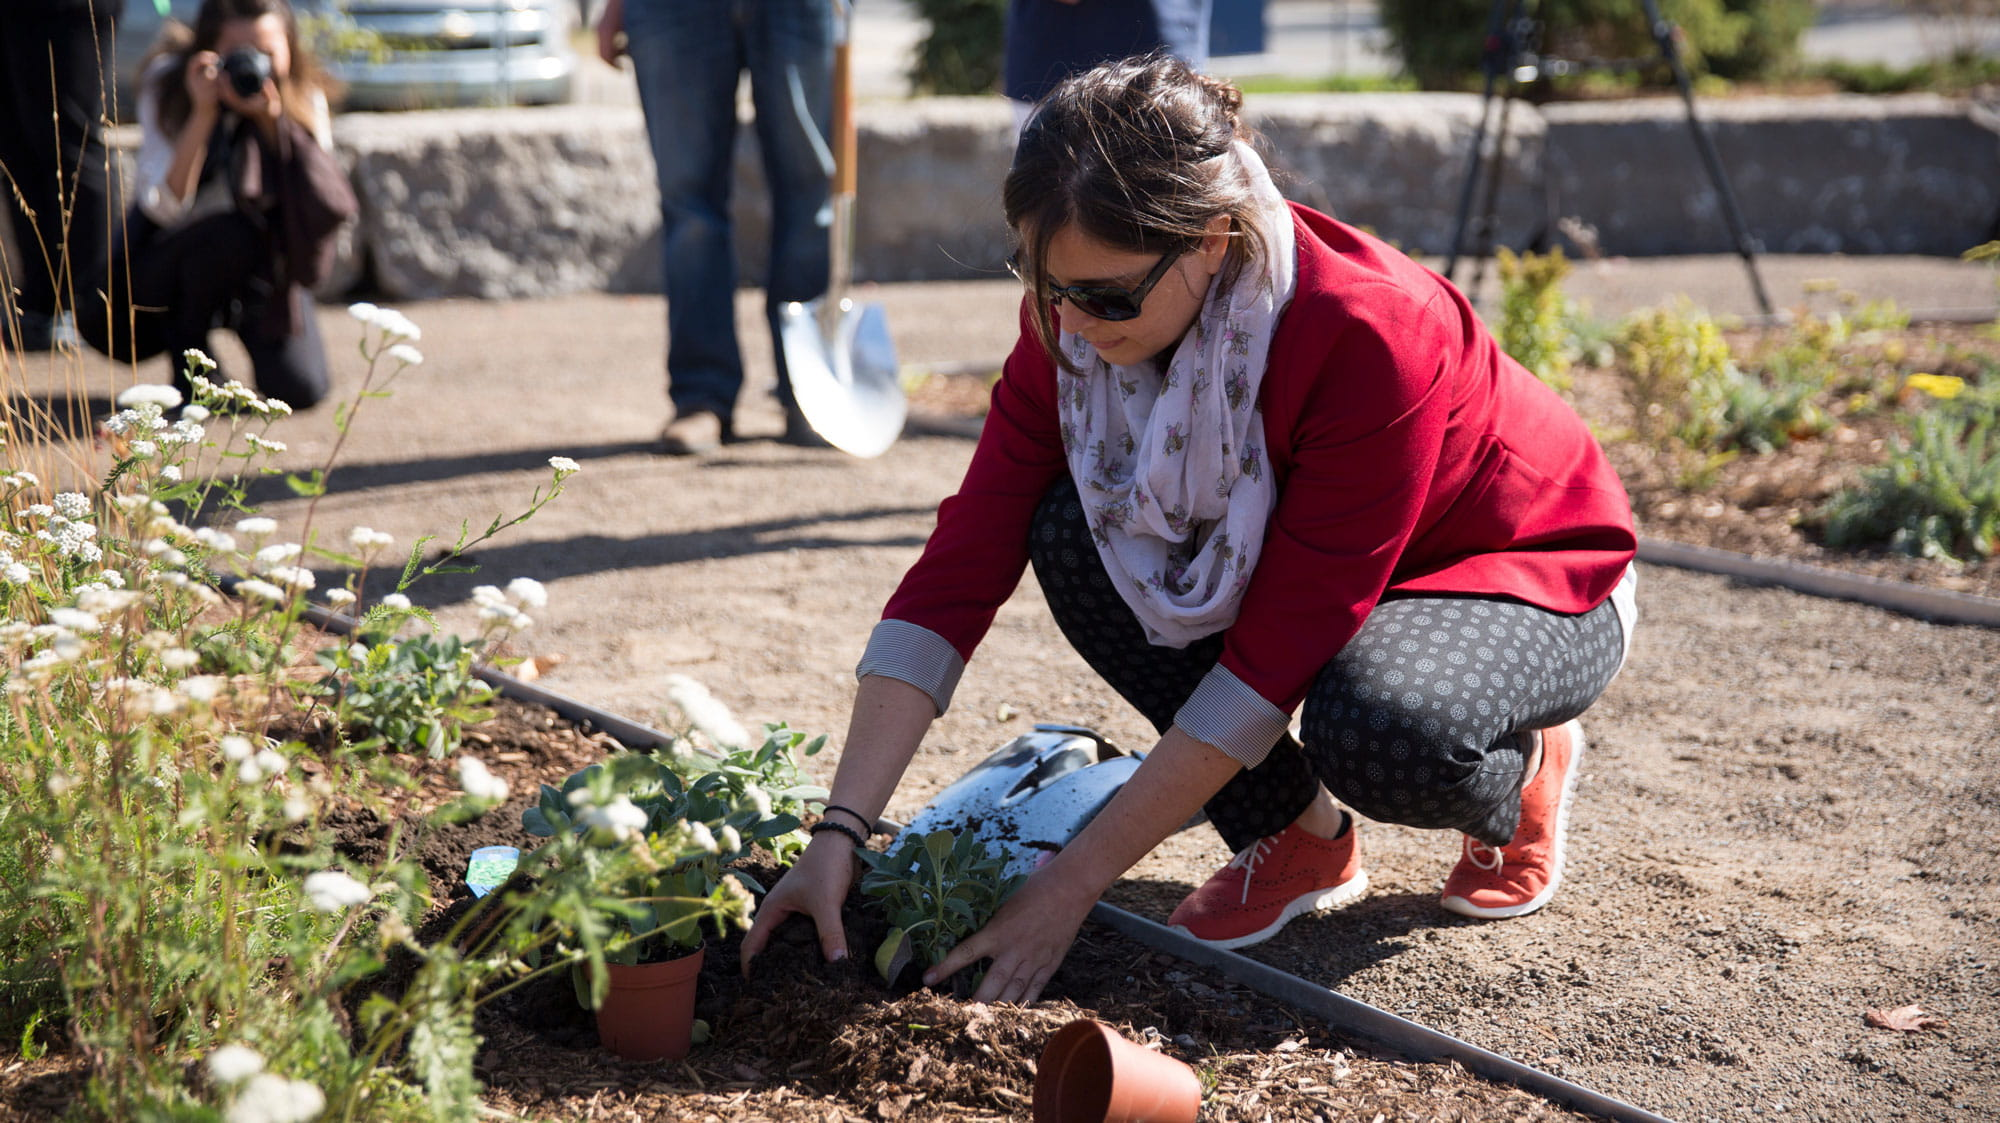 A woman kneeling beside a garden and planting flowers